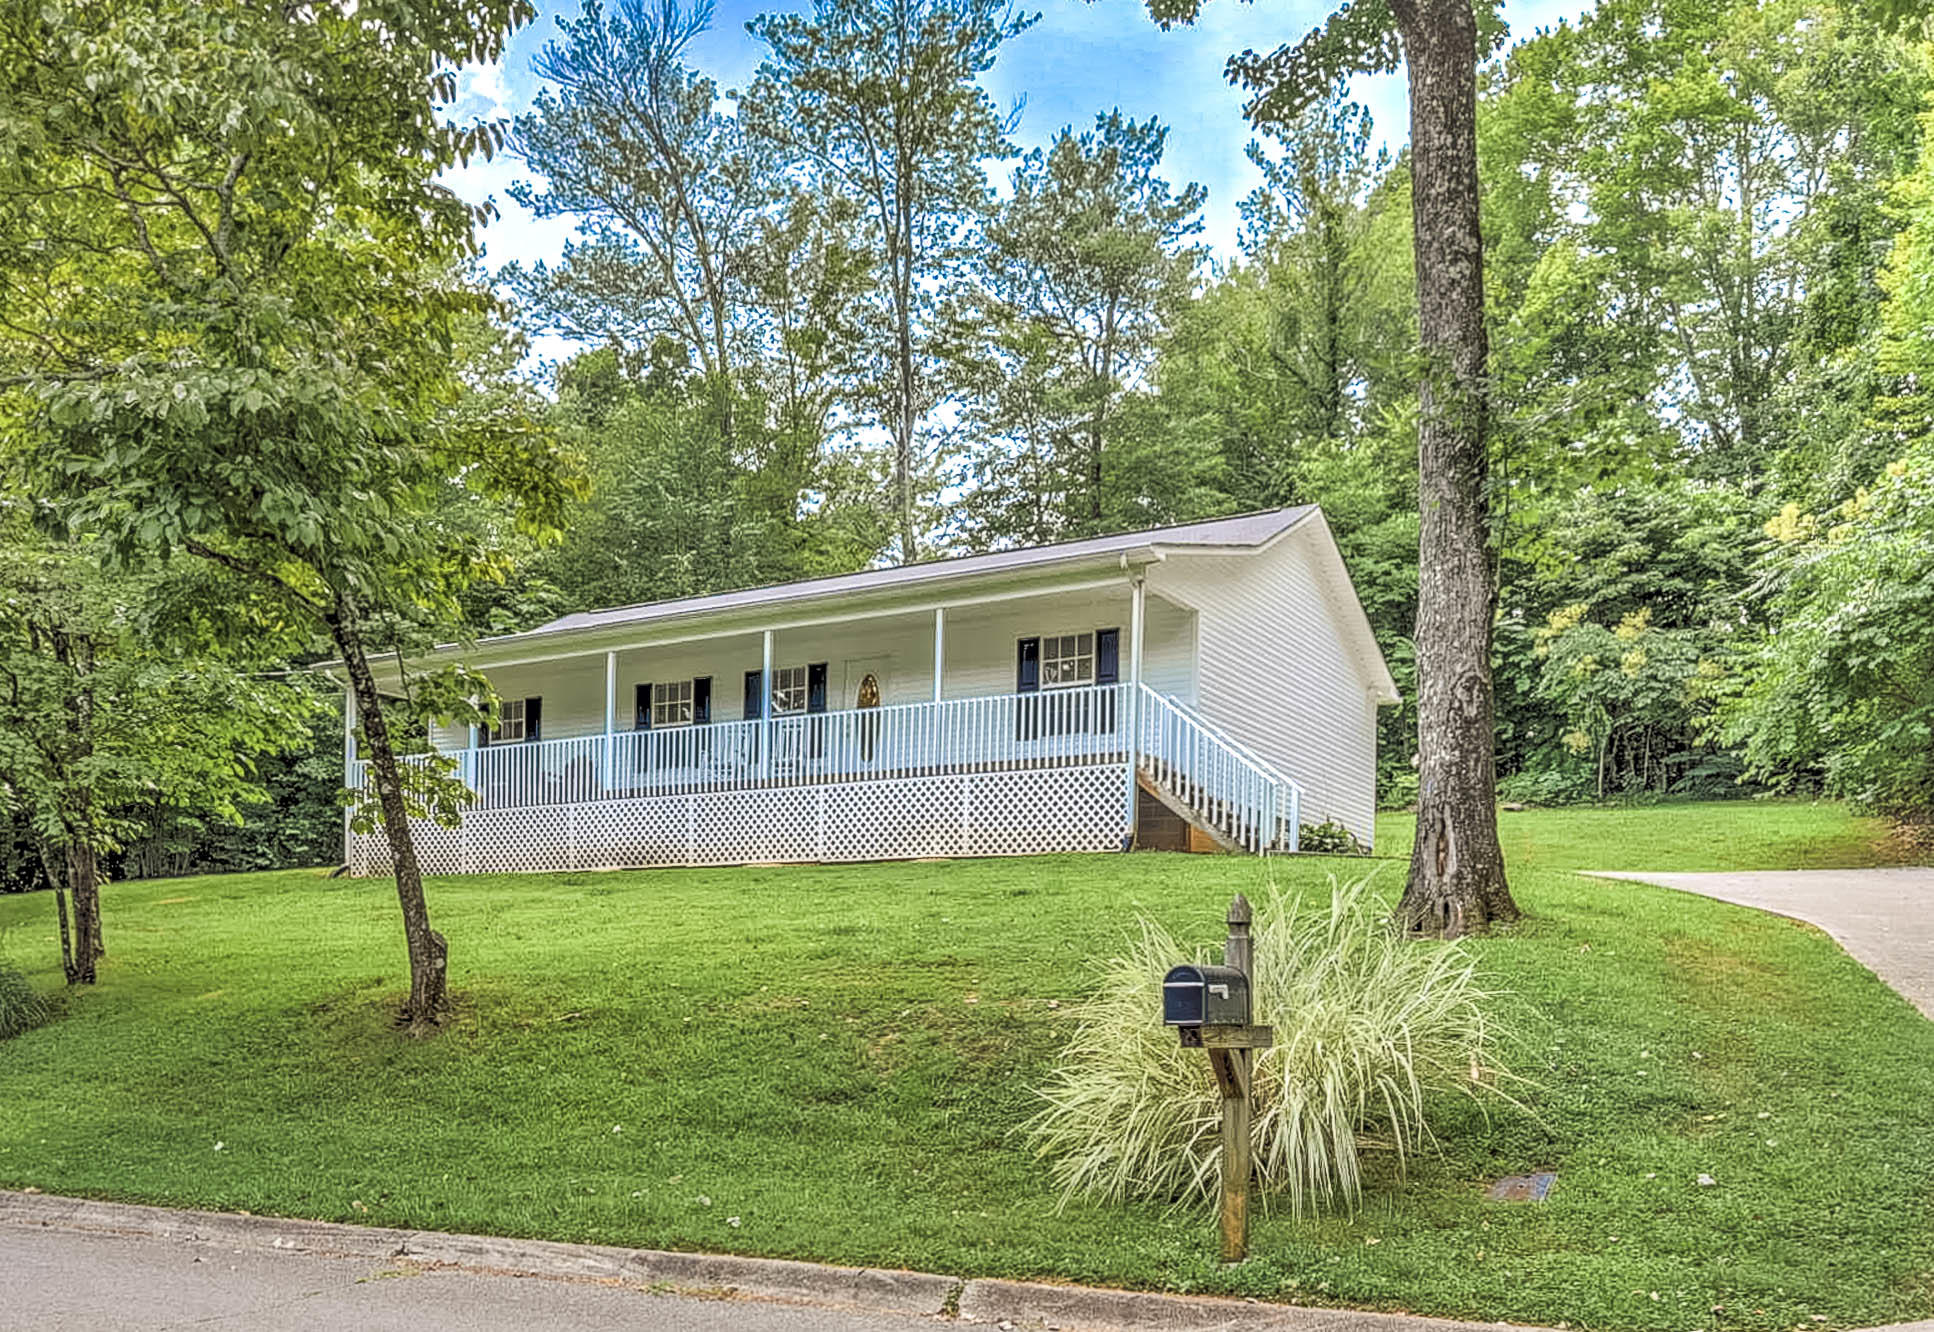 20190803191615301507000000-o Clinton anderson county homes for sale